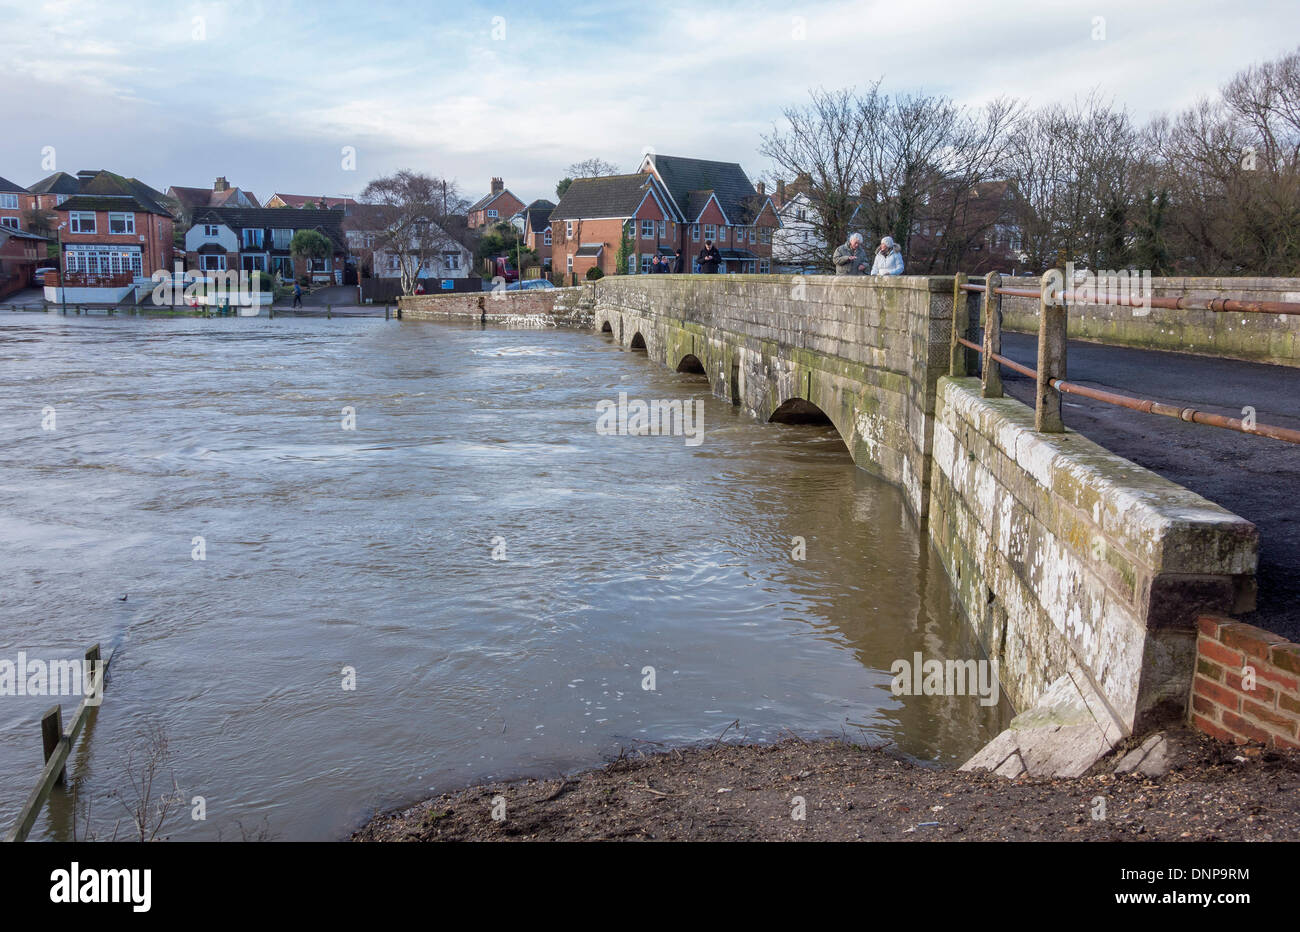 Iford Bridge Home Park Christchurch And Flood Levels Of The River Stour Dorset UK